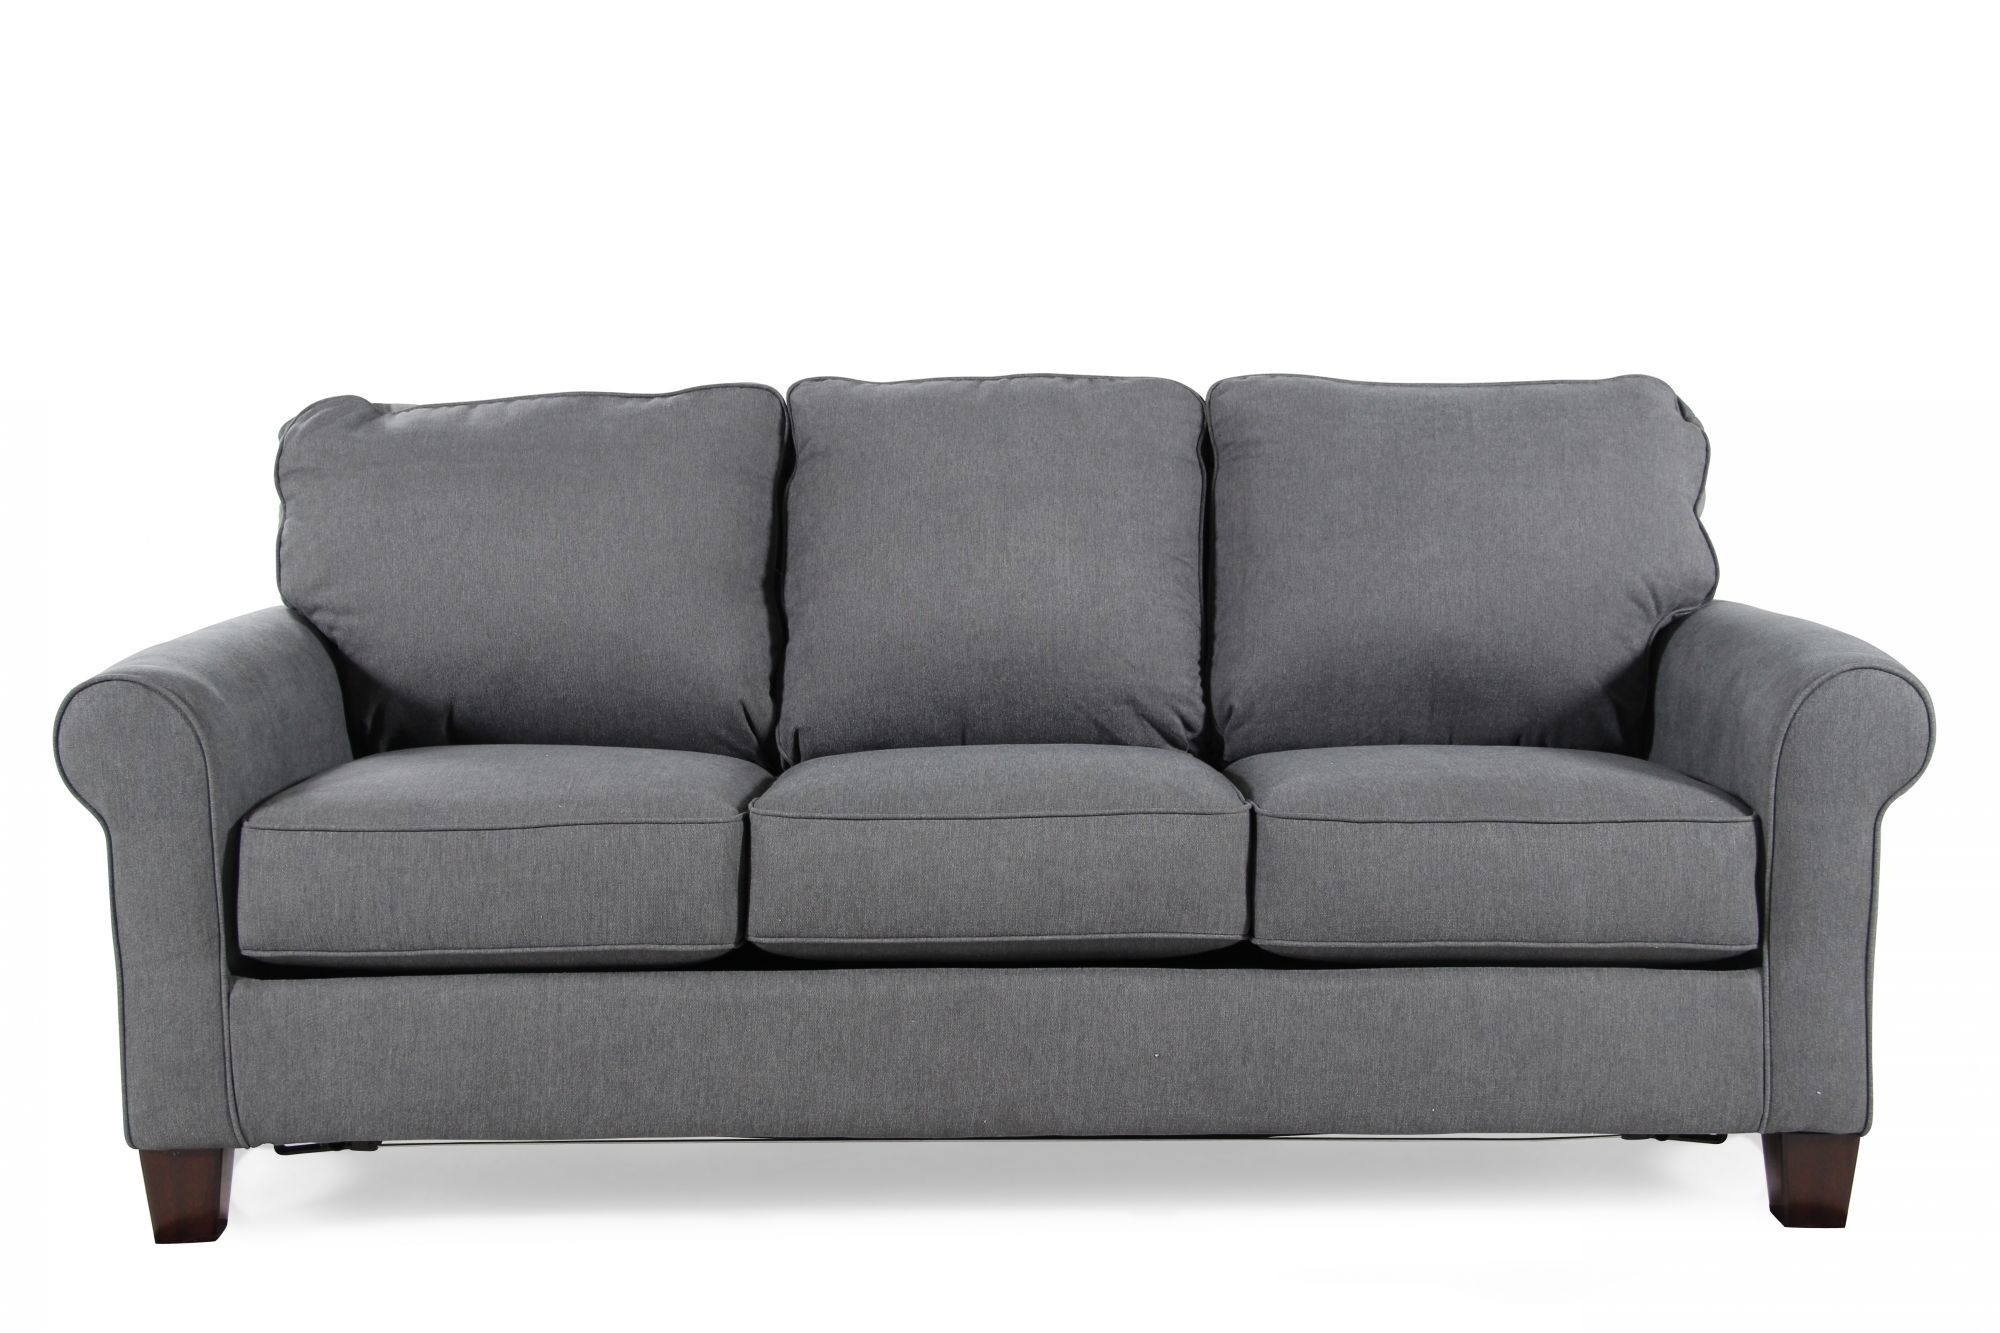 modern sleeper sofa under 1000 slouch couch bed contemporary 78 quot full in denim blue mathis